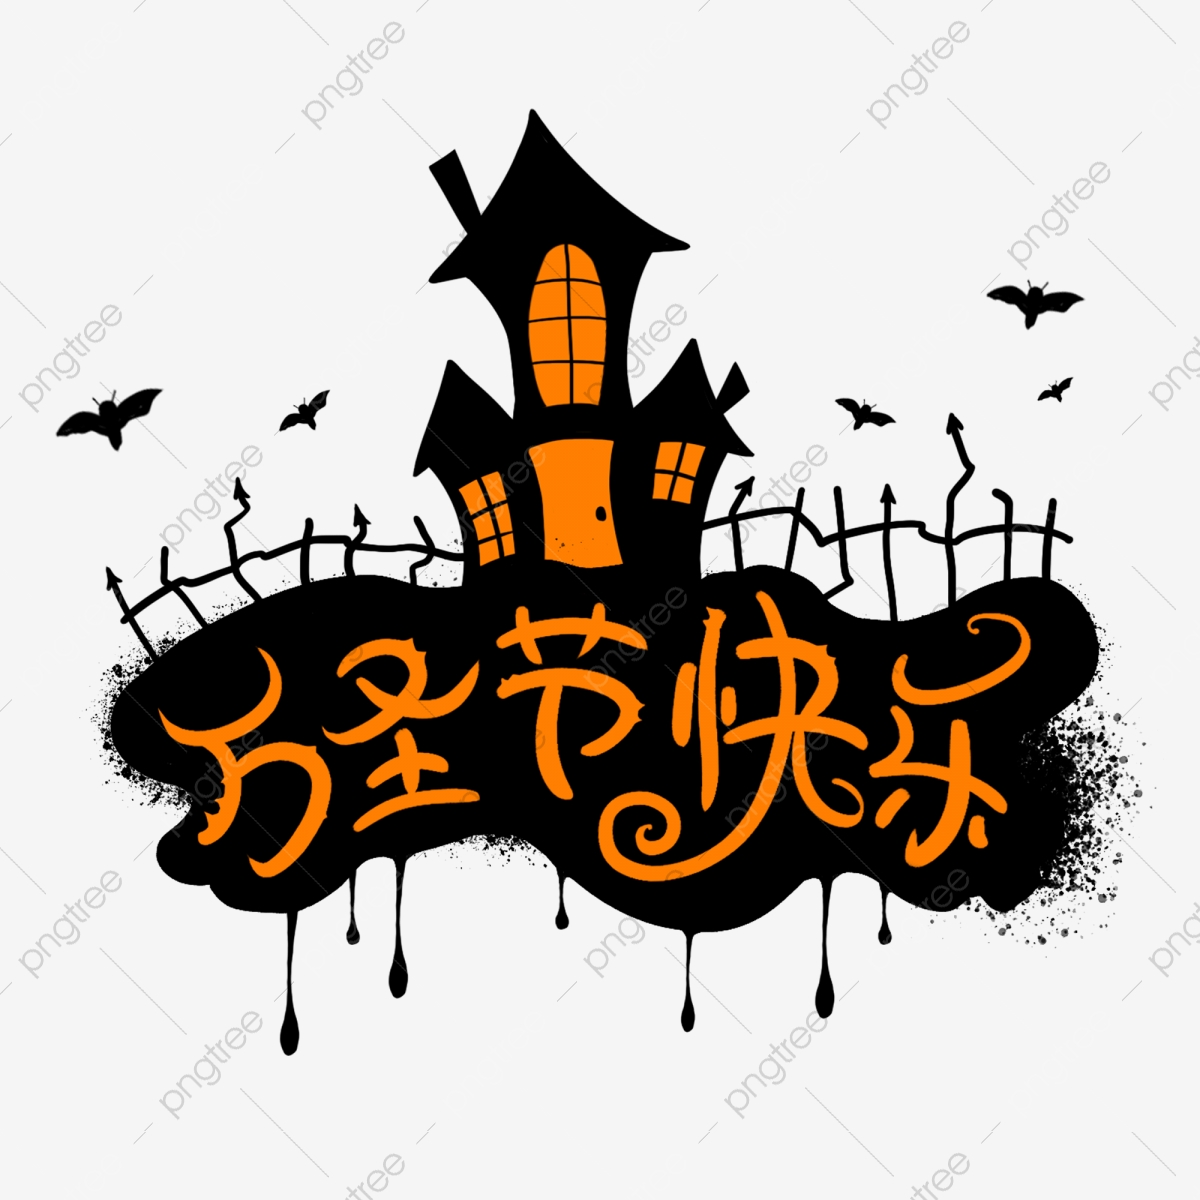 hight resolution of commercial use resource upgrade to premium plan and get license authorization upgradenow happy halloween halloween clipart